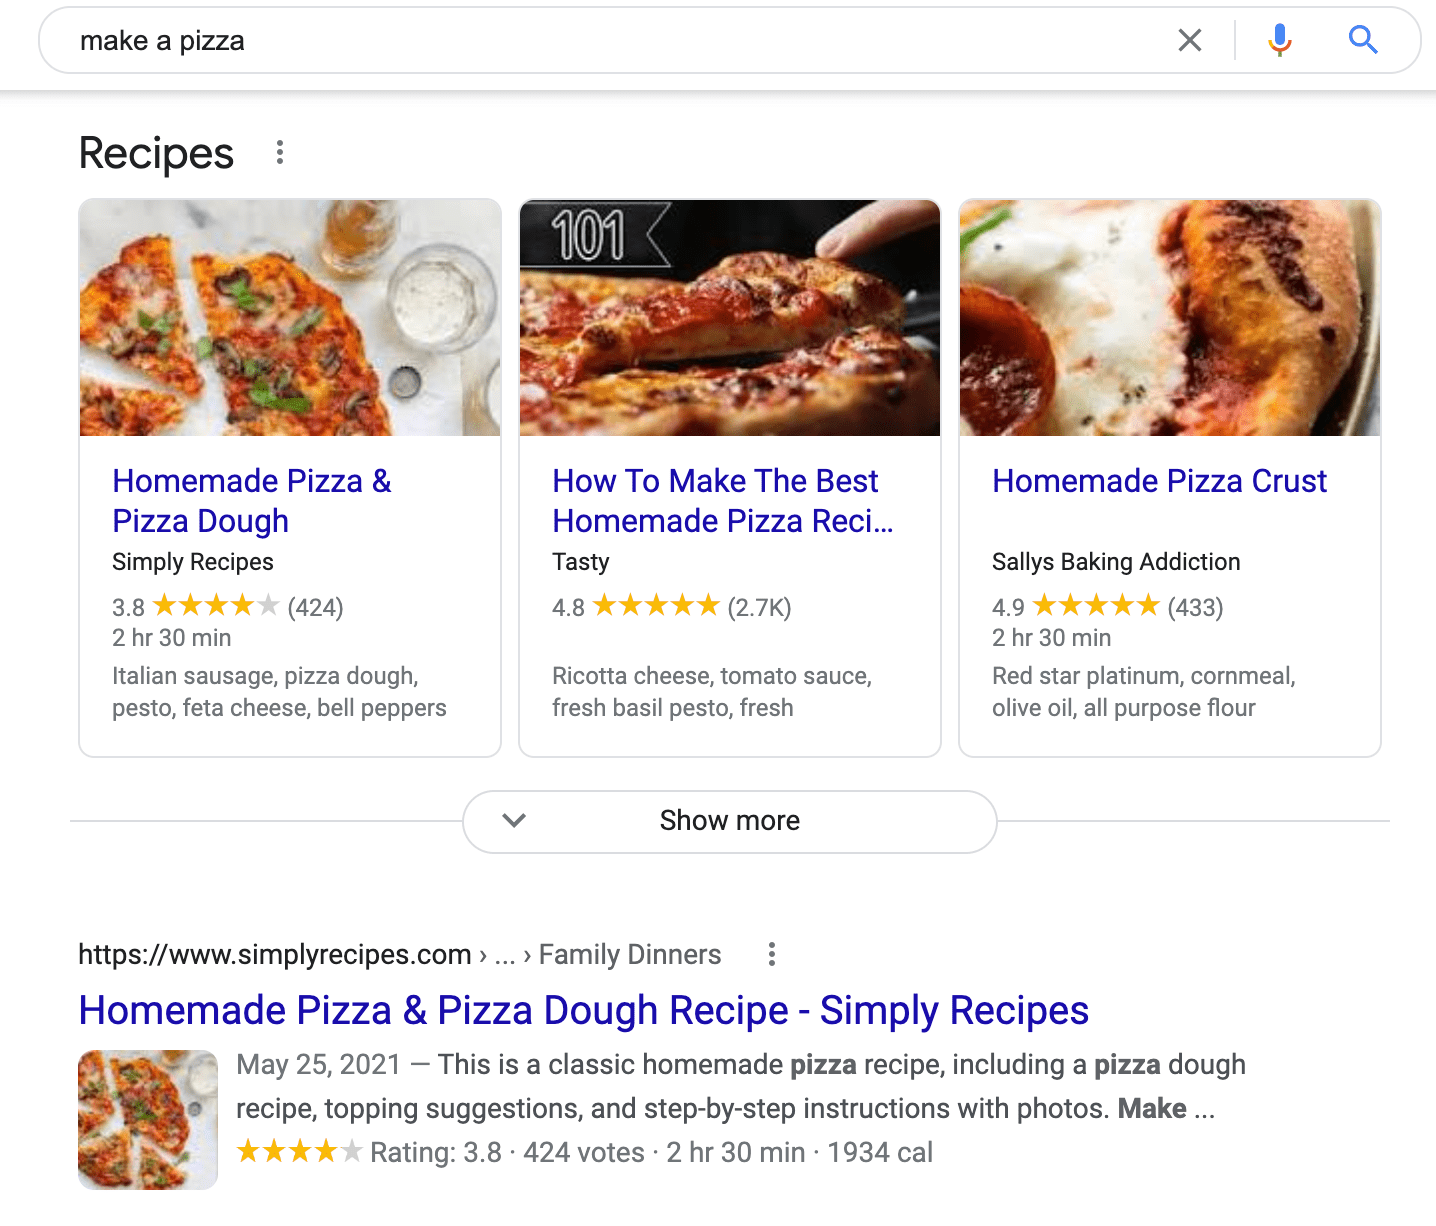 search results for the search term make a pizza